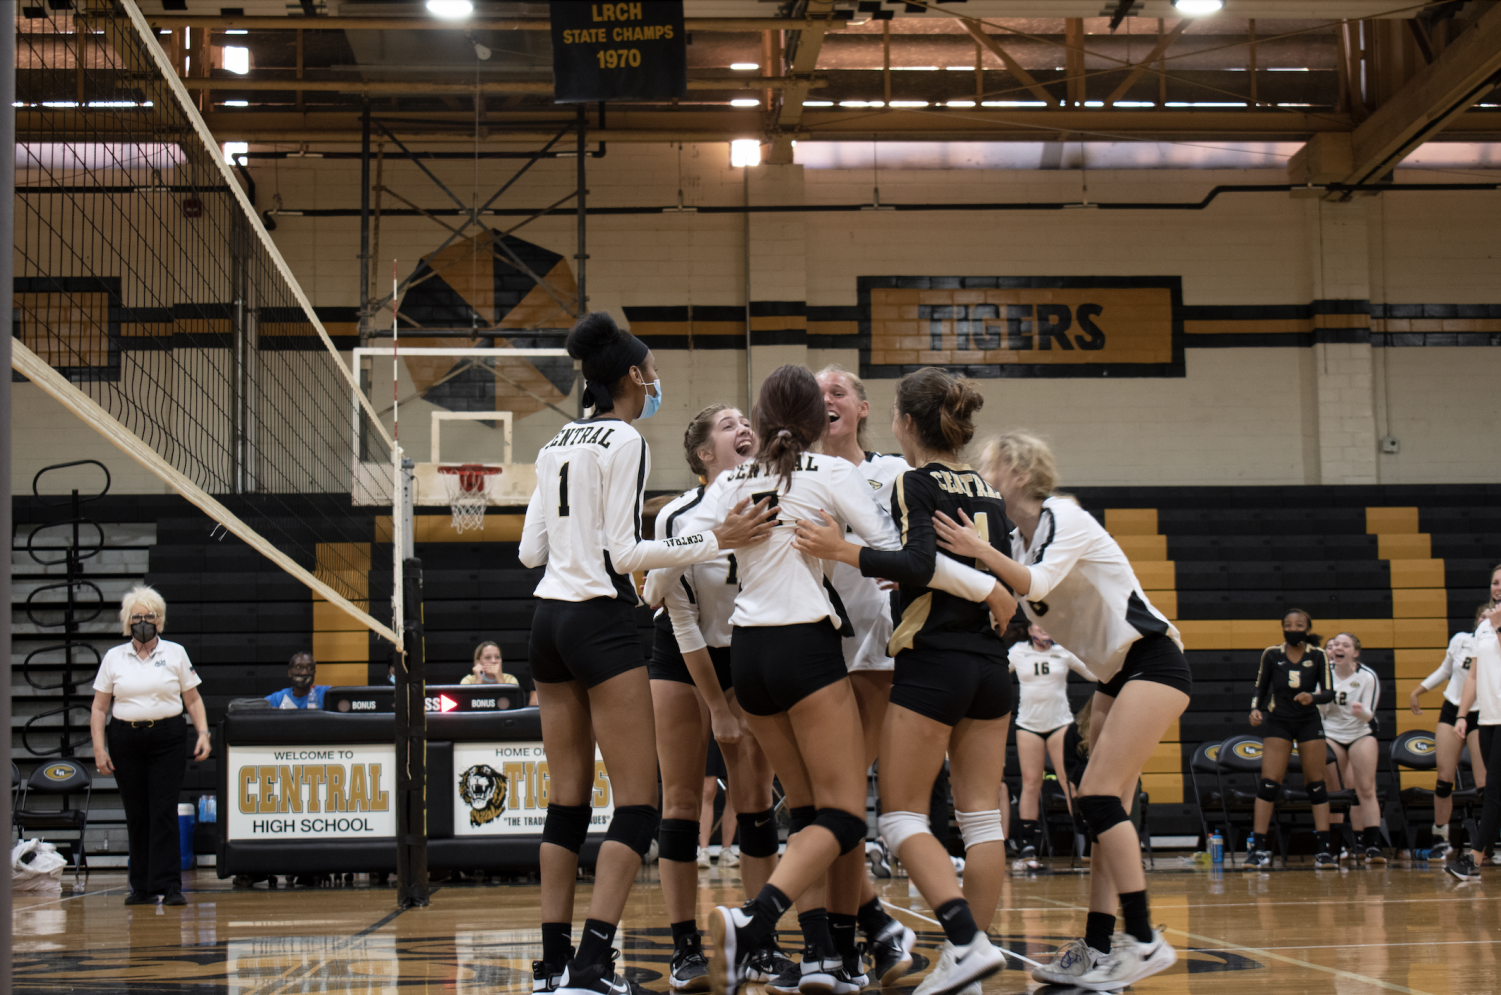 The varsity volleyball team celebrates winning a point against Maumelle at home Aug. 25.